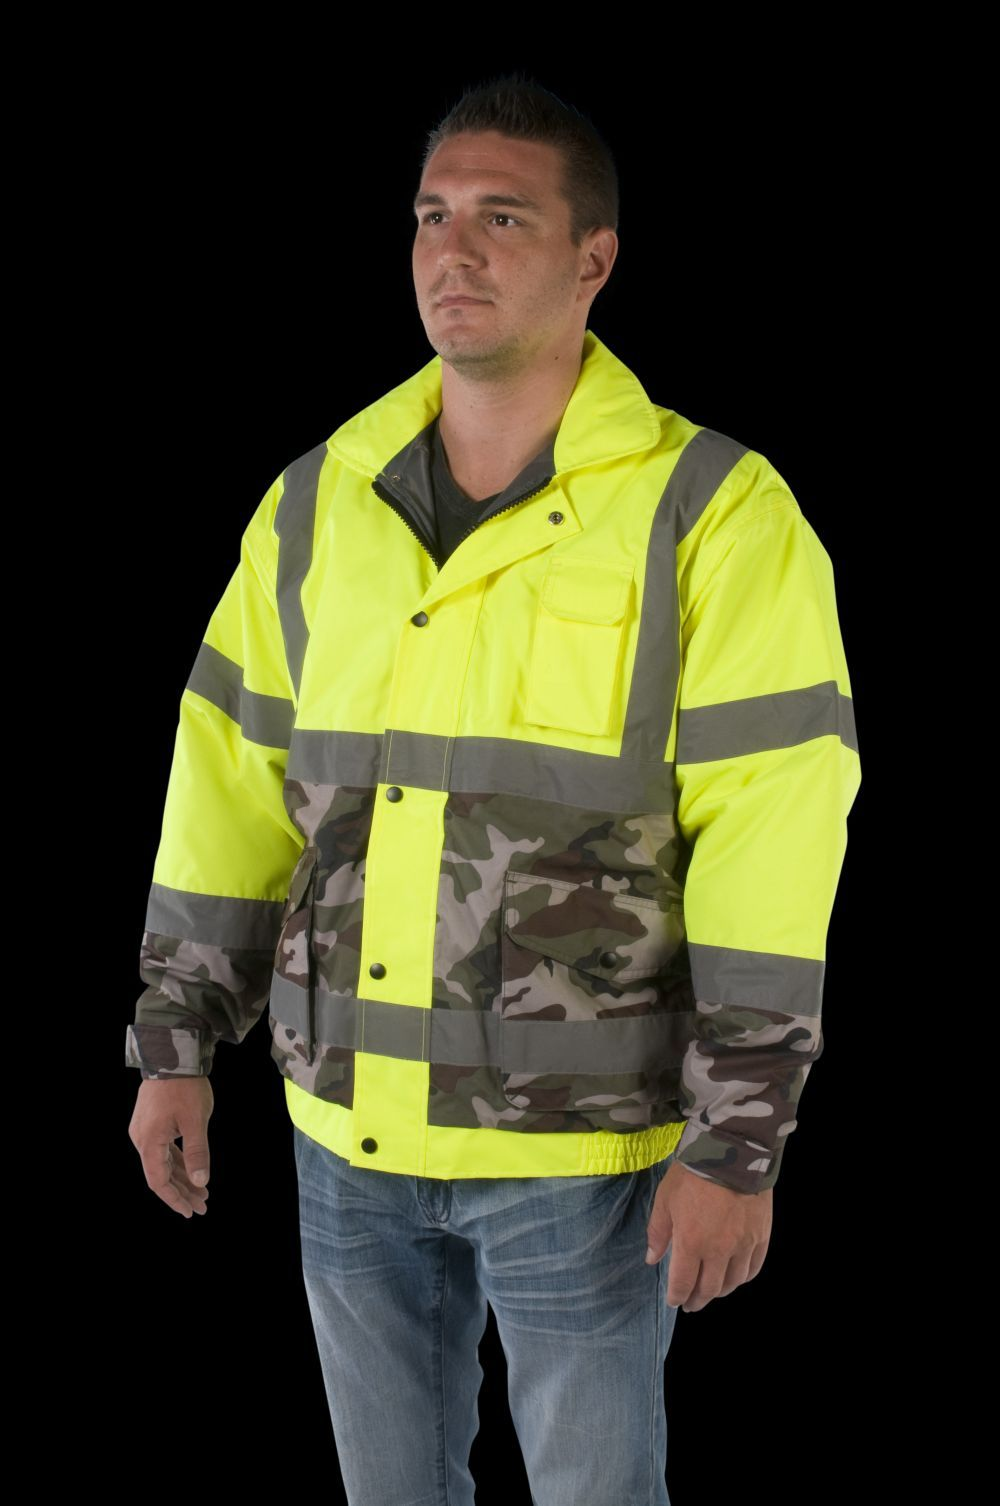 UHV561 High Visibility Bomber with Camo Bottom - SPECIAL EDITION - Utility Pro Wear